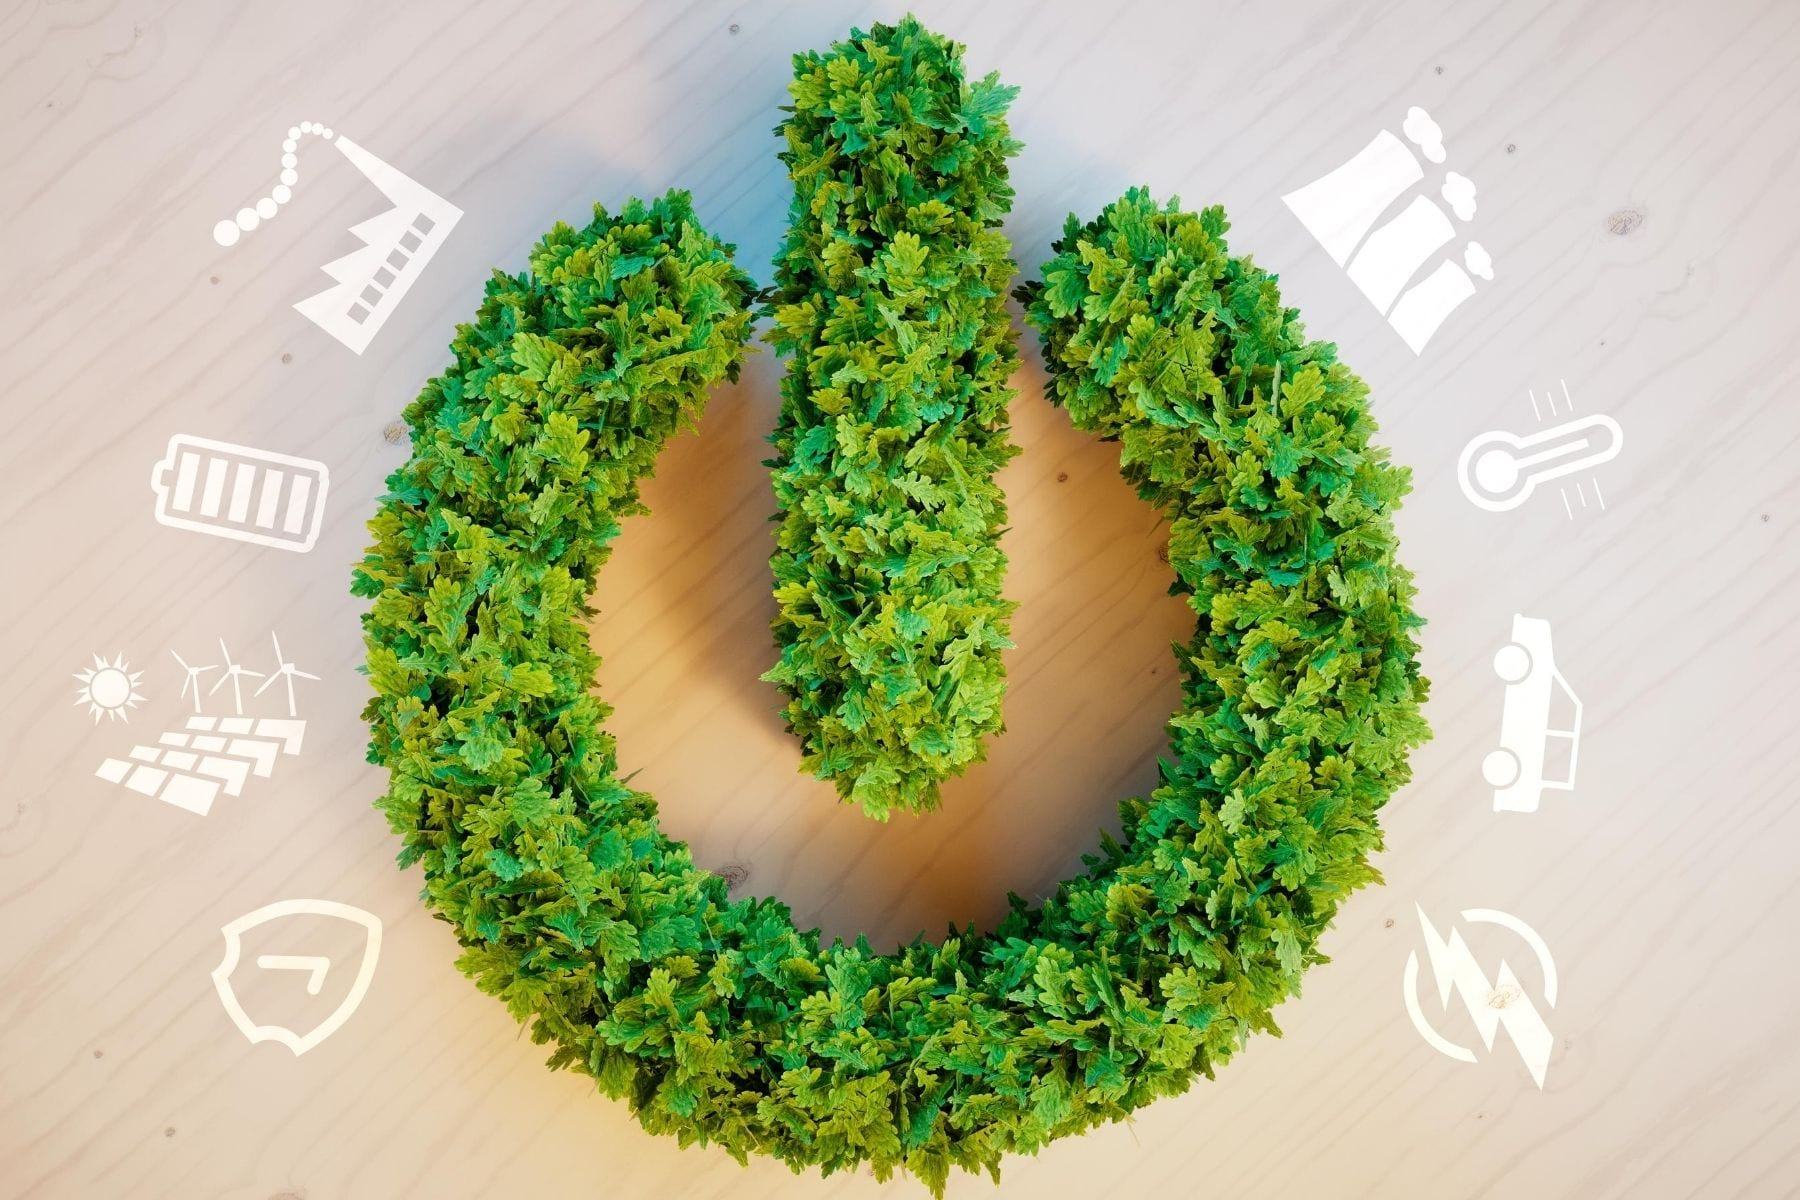 A power symbol made from leaves.